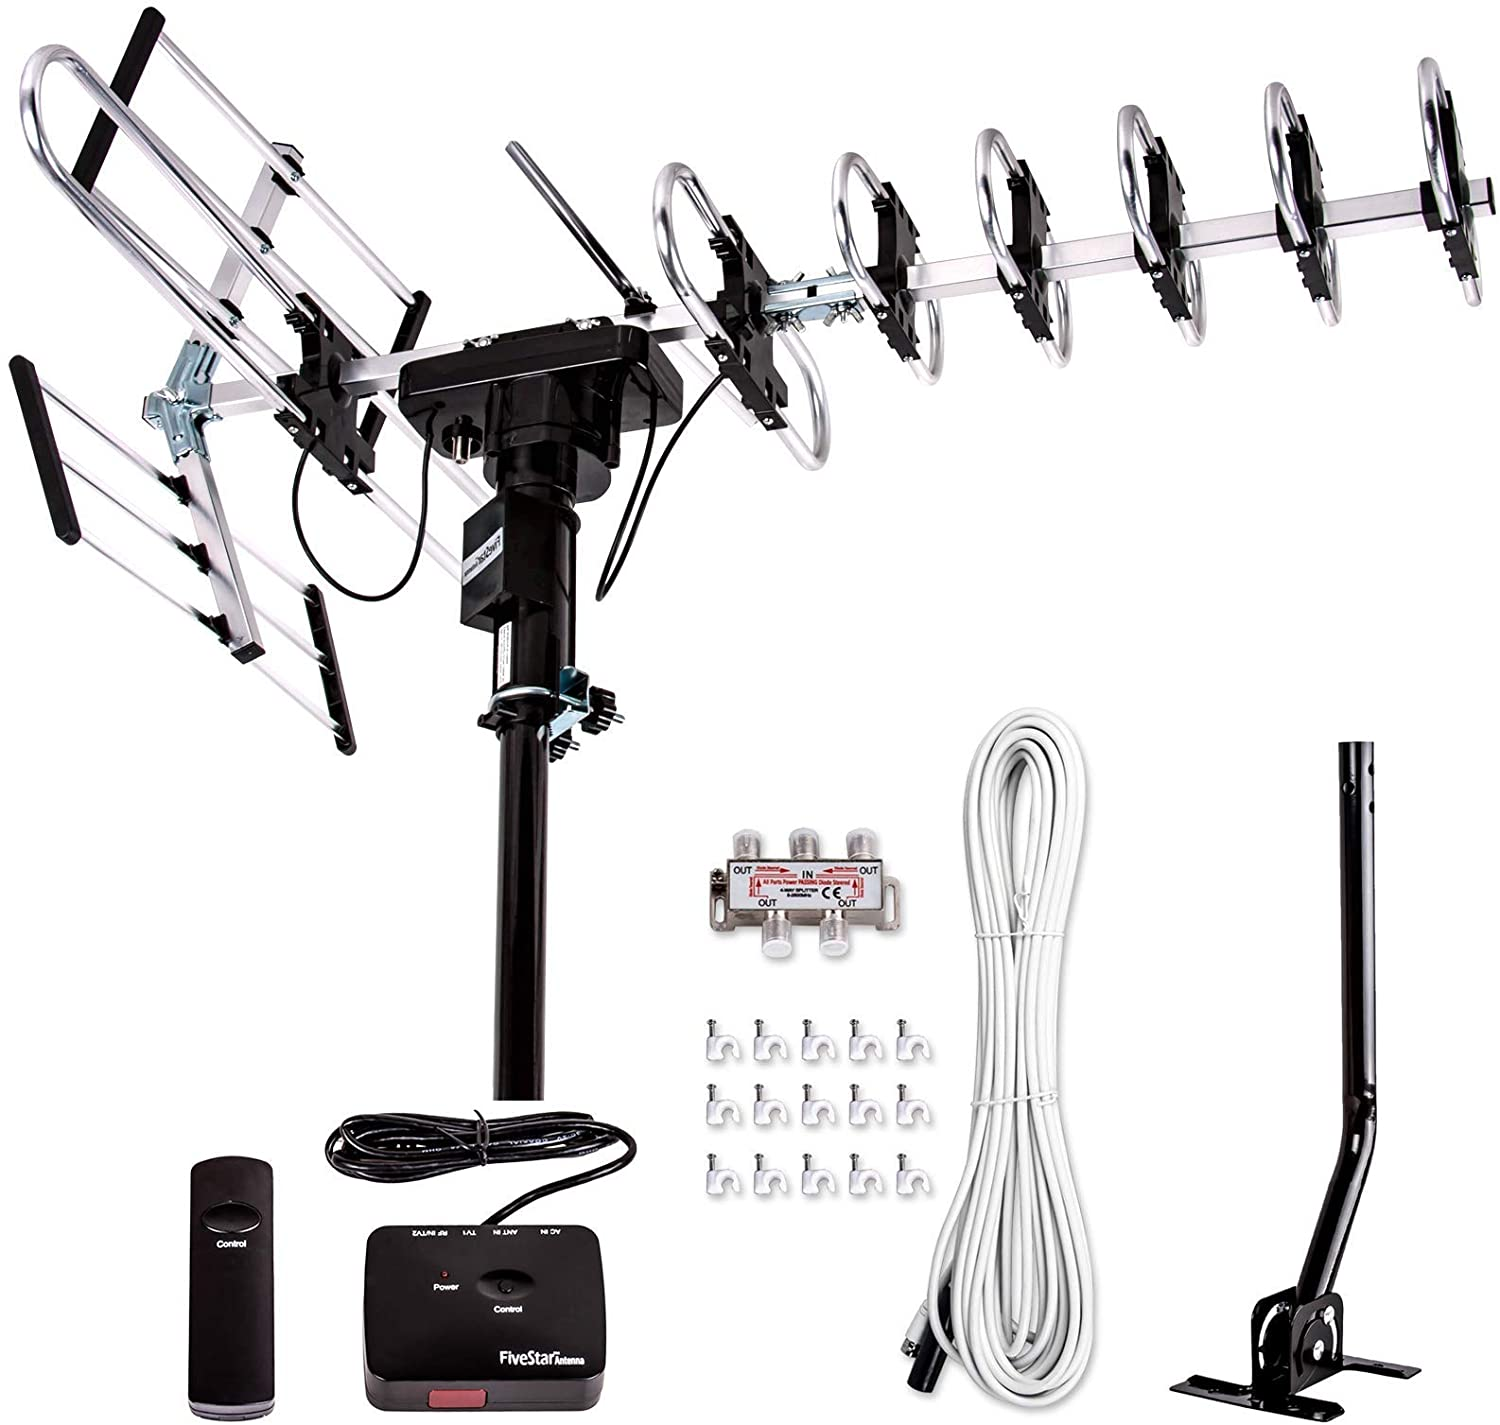 Five Star Outdoor Digital Amplified HDTV Antenna, 200-Mile Range